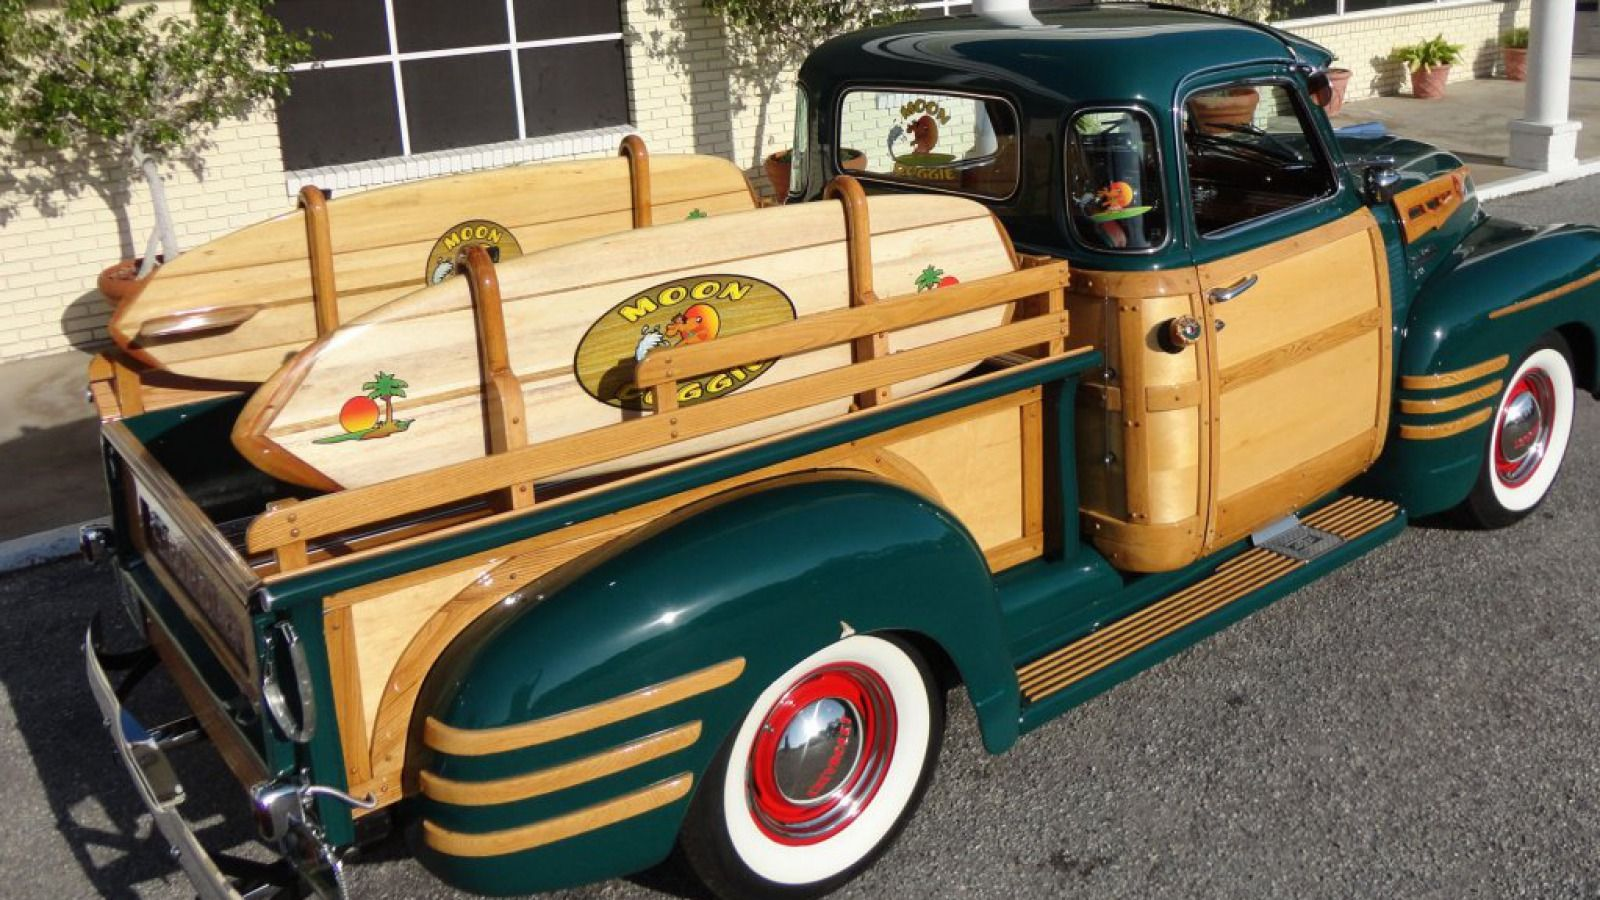 1950 chevy woody pickup surf wagons vans busses and bugs 1950 chevy woody pickup maintenance of old vehicles the material for new cogscastersgearspads could be cast polyamide which i cast polyamide can publicscrutiny Gallery